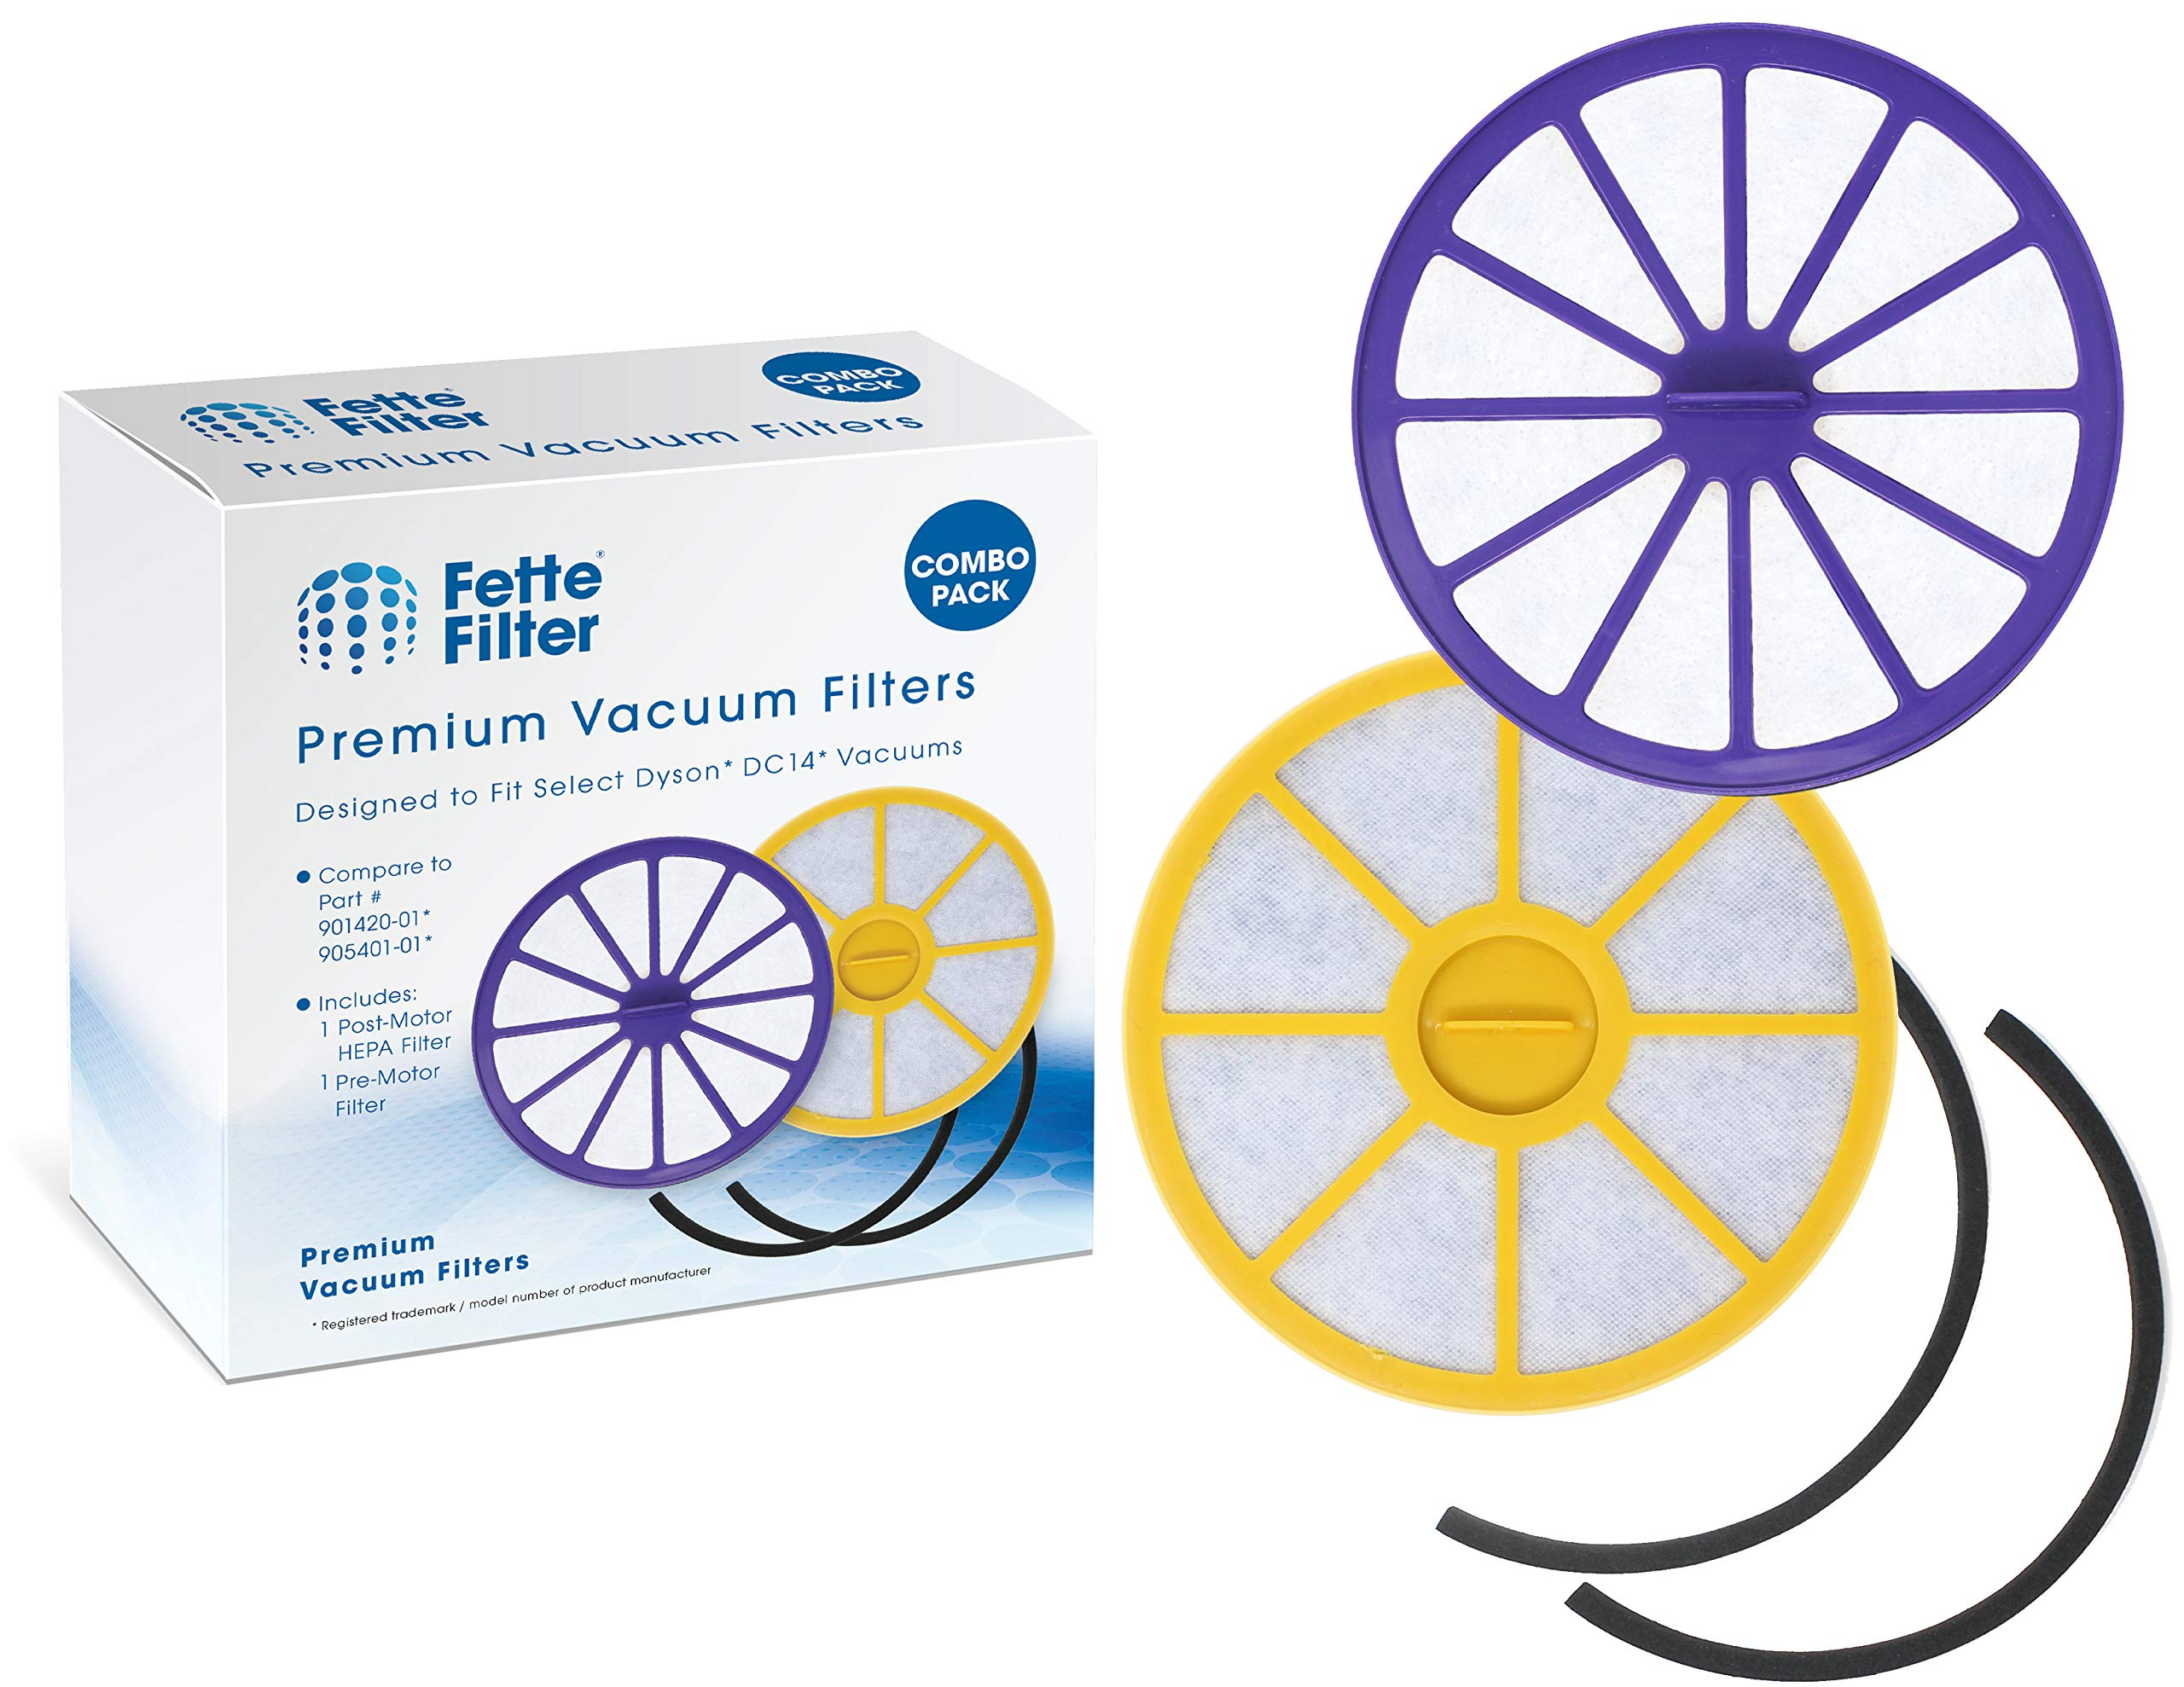 Fette Filter - Pre-Motor and Post-Motor HEPA Vacuum Filters Compatible with Dyson DC14. Compare to Part # 901420-01, 905401-01, 923480-01. (Combo Pack)